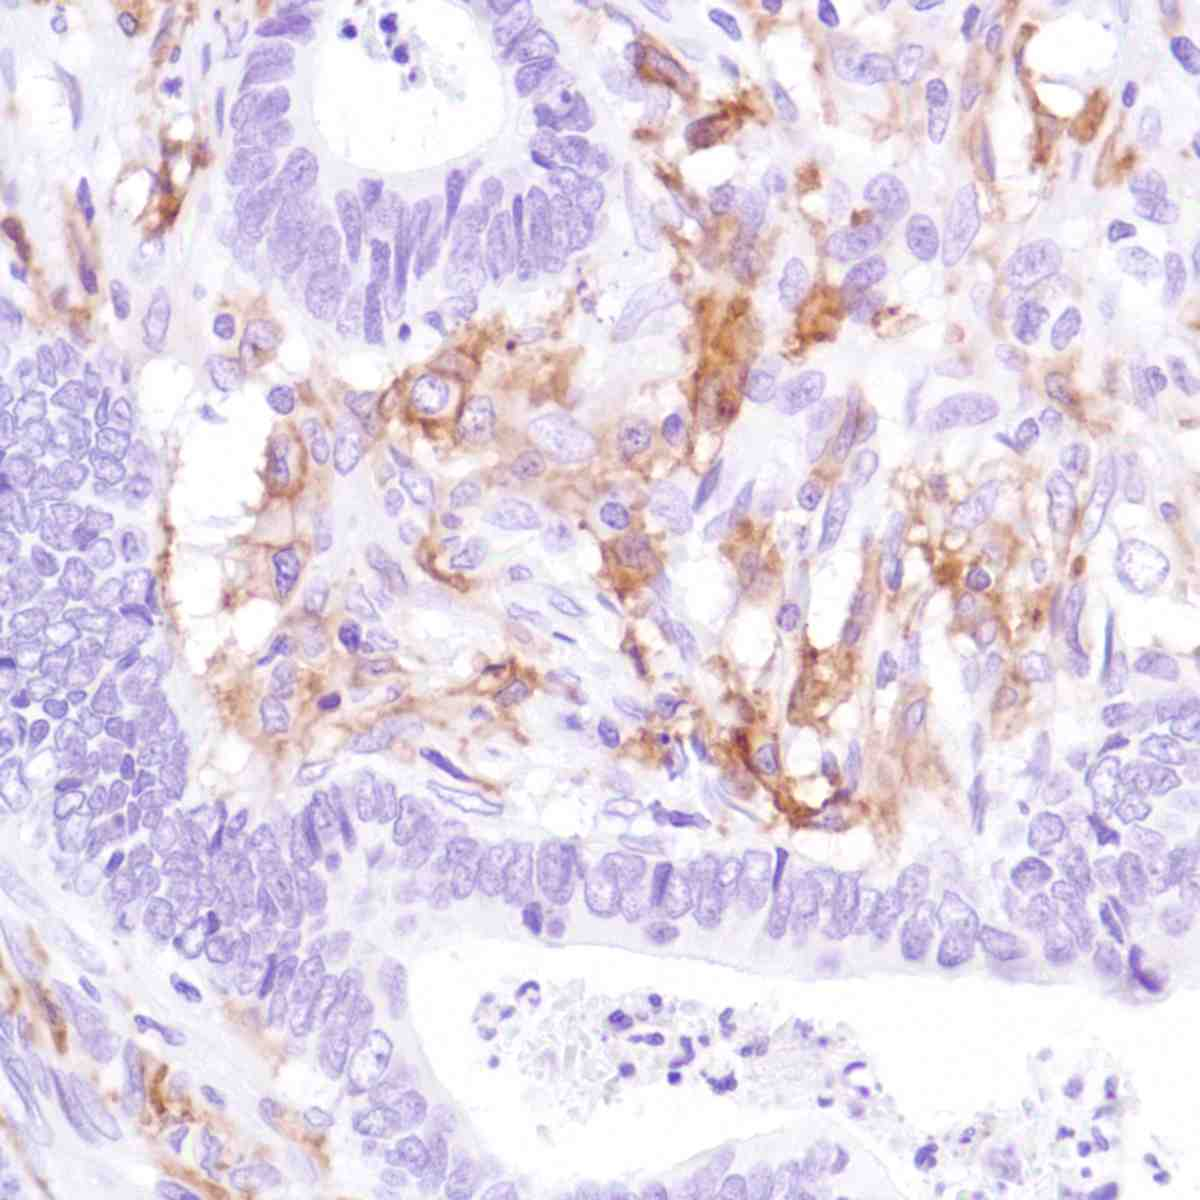 Human Colon Adenocarcinoma stained with anti-CD16a antibody